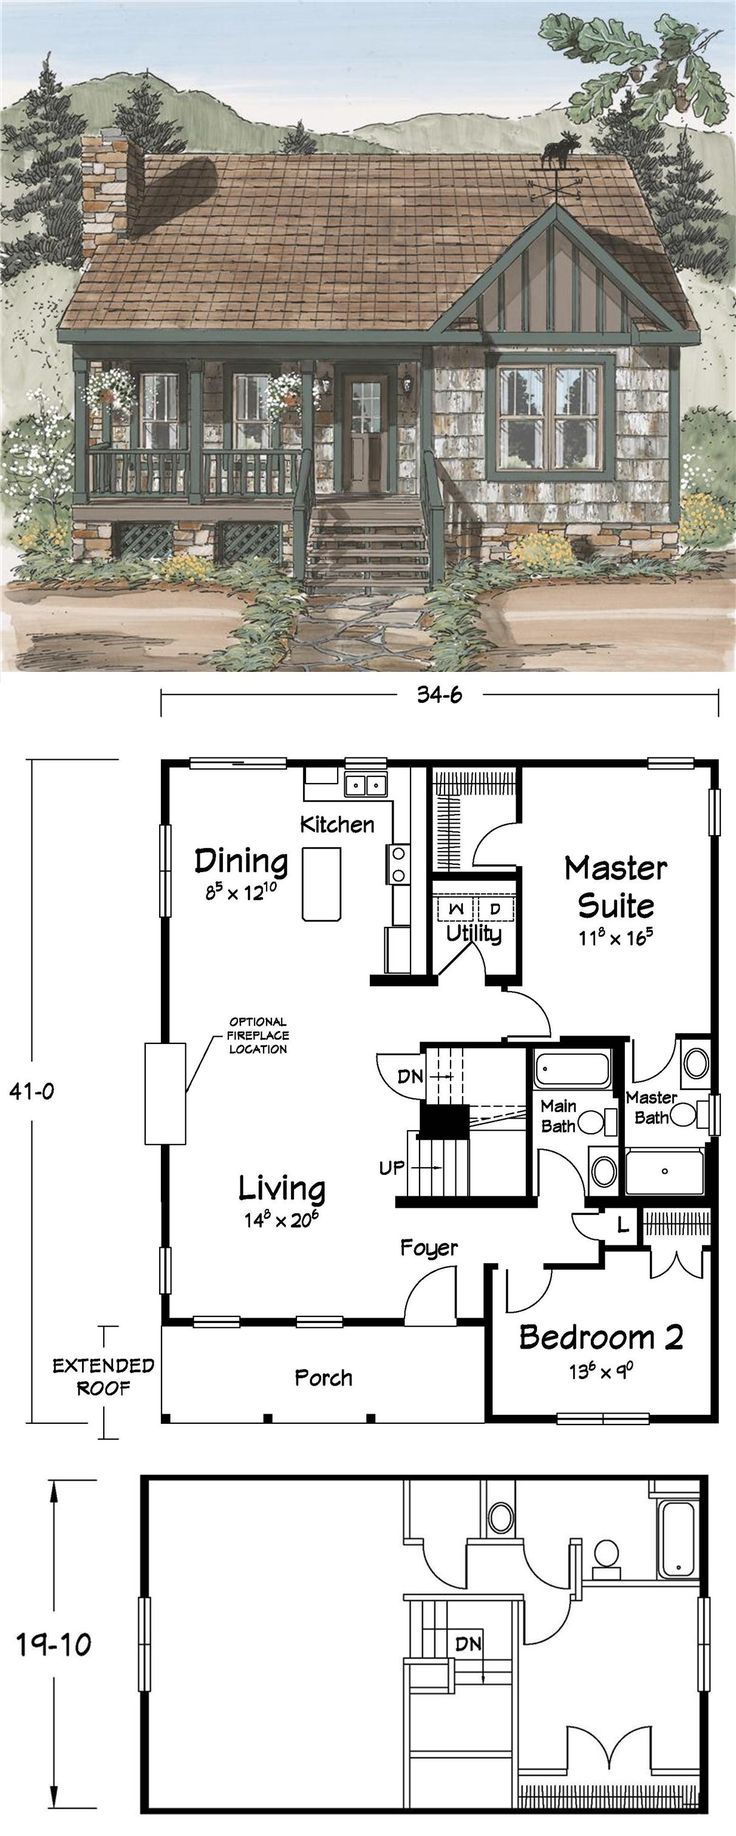 Cute floor plans tiny homes pinterest cabin small for 2 bathroom tiny house